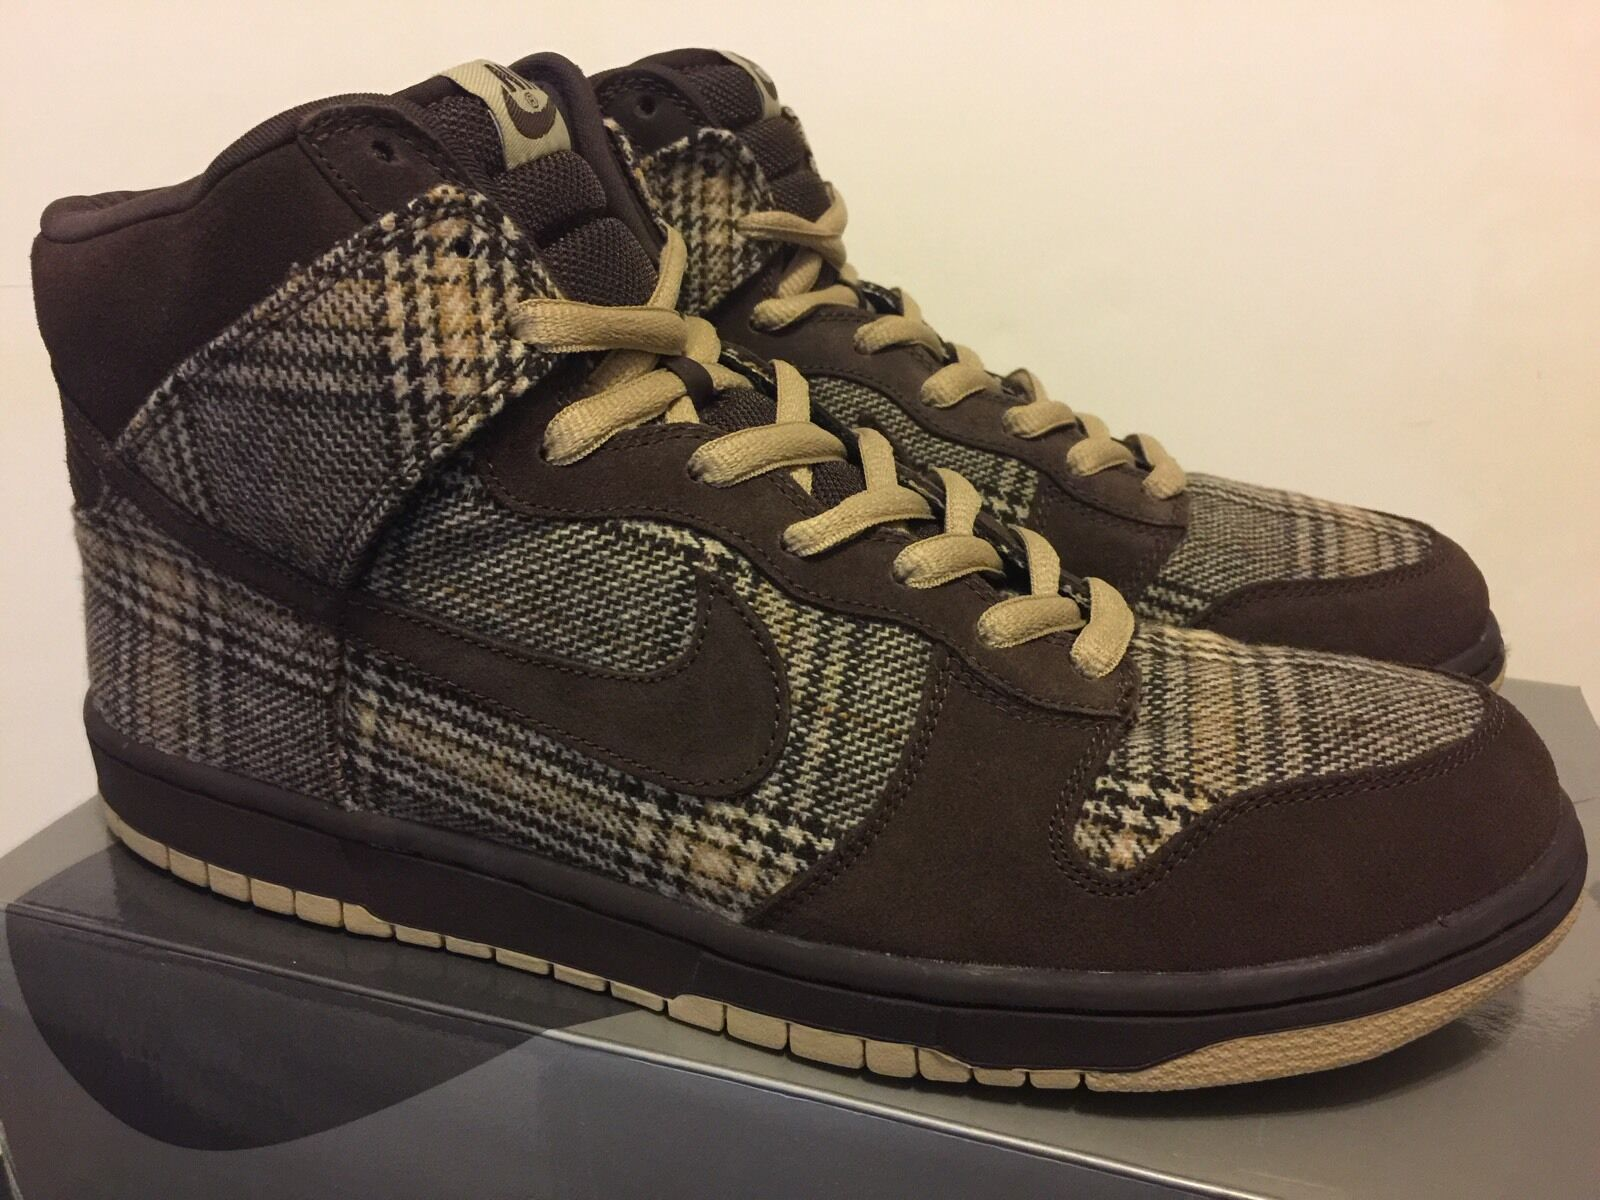 Nike Dunk High Pro Tweed / Baroque Brown 2004 Size 13 NEW DS Skunk